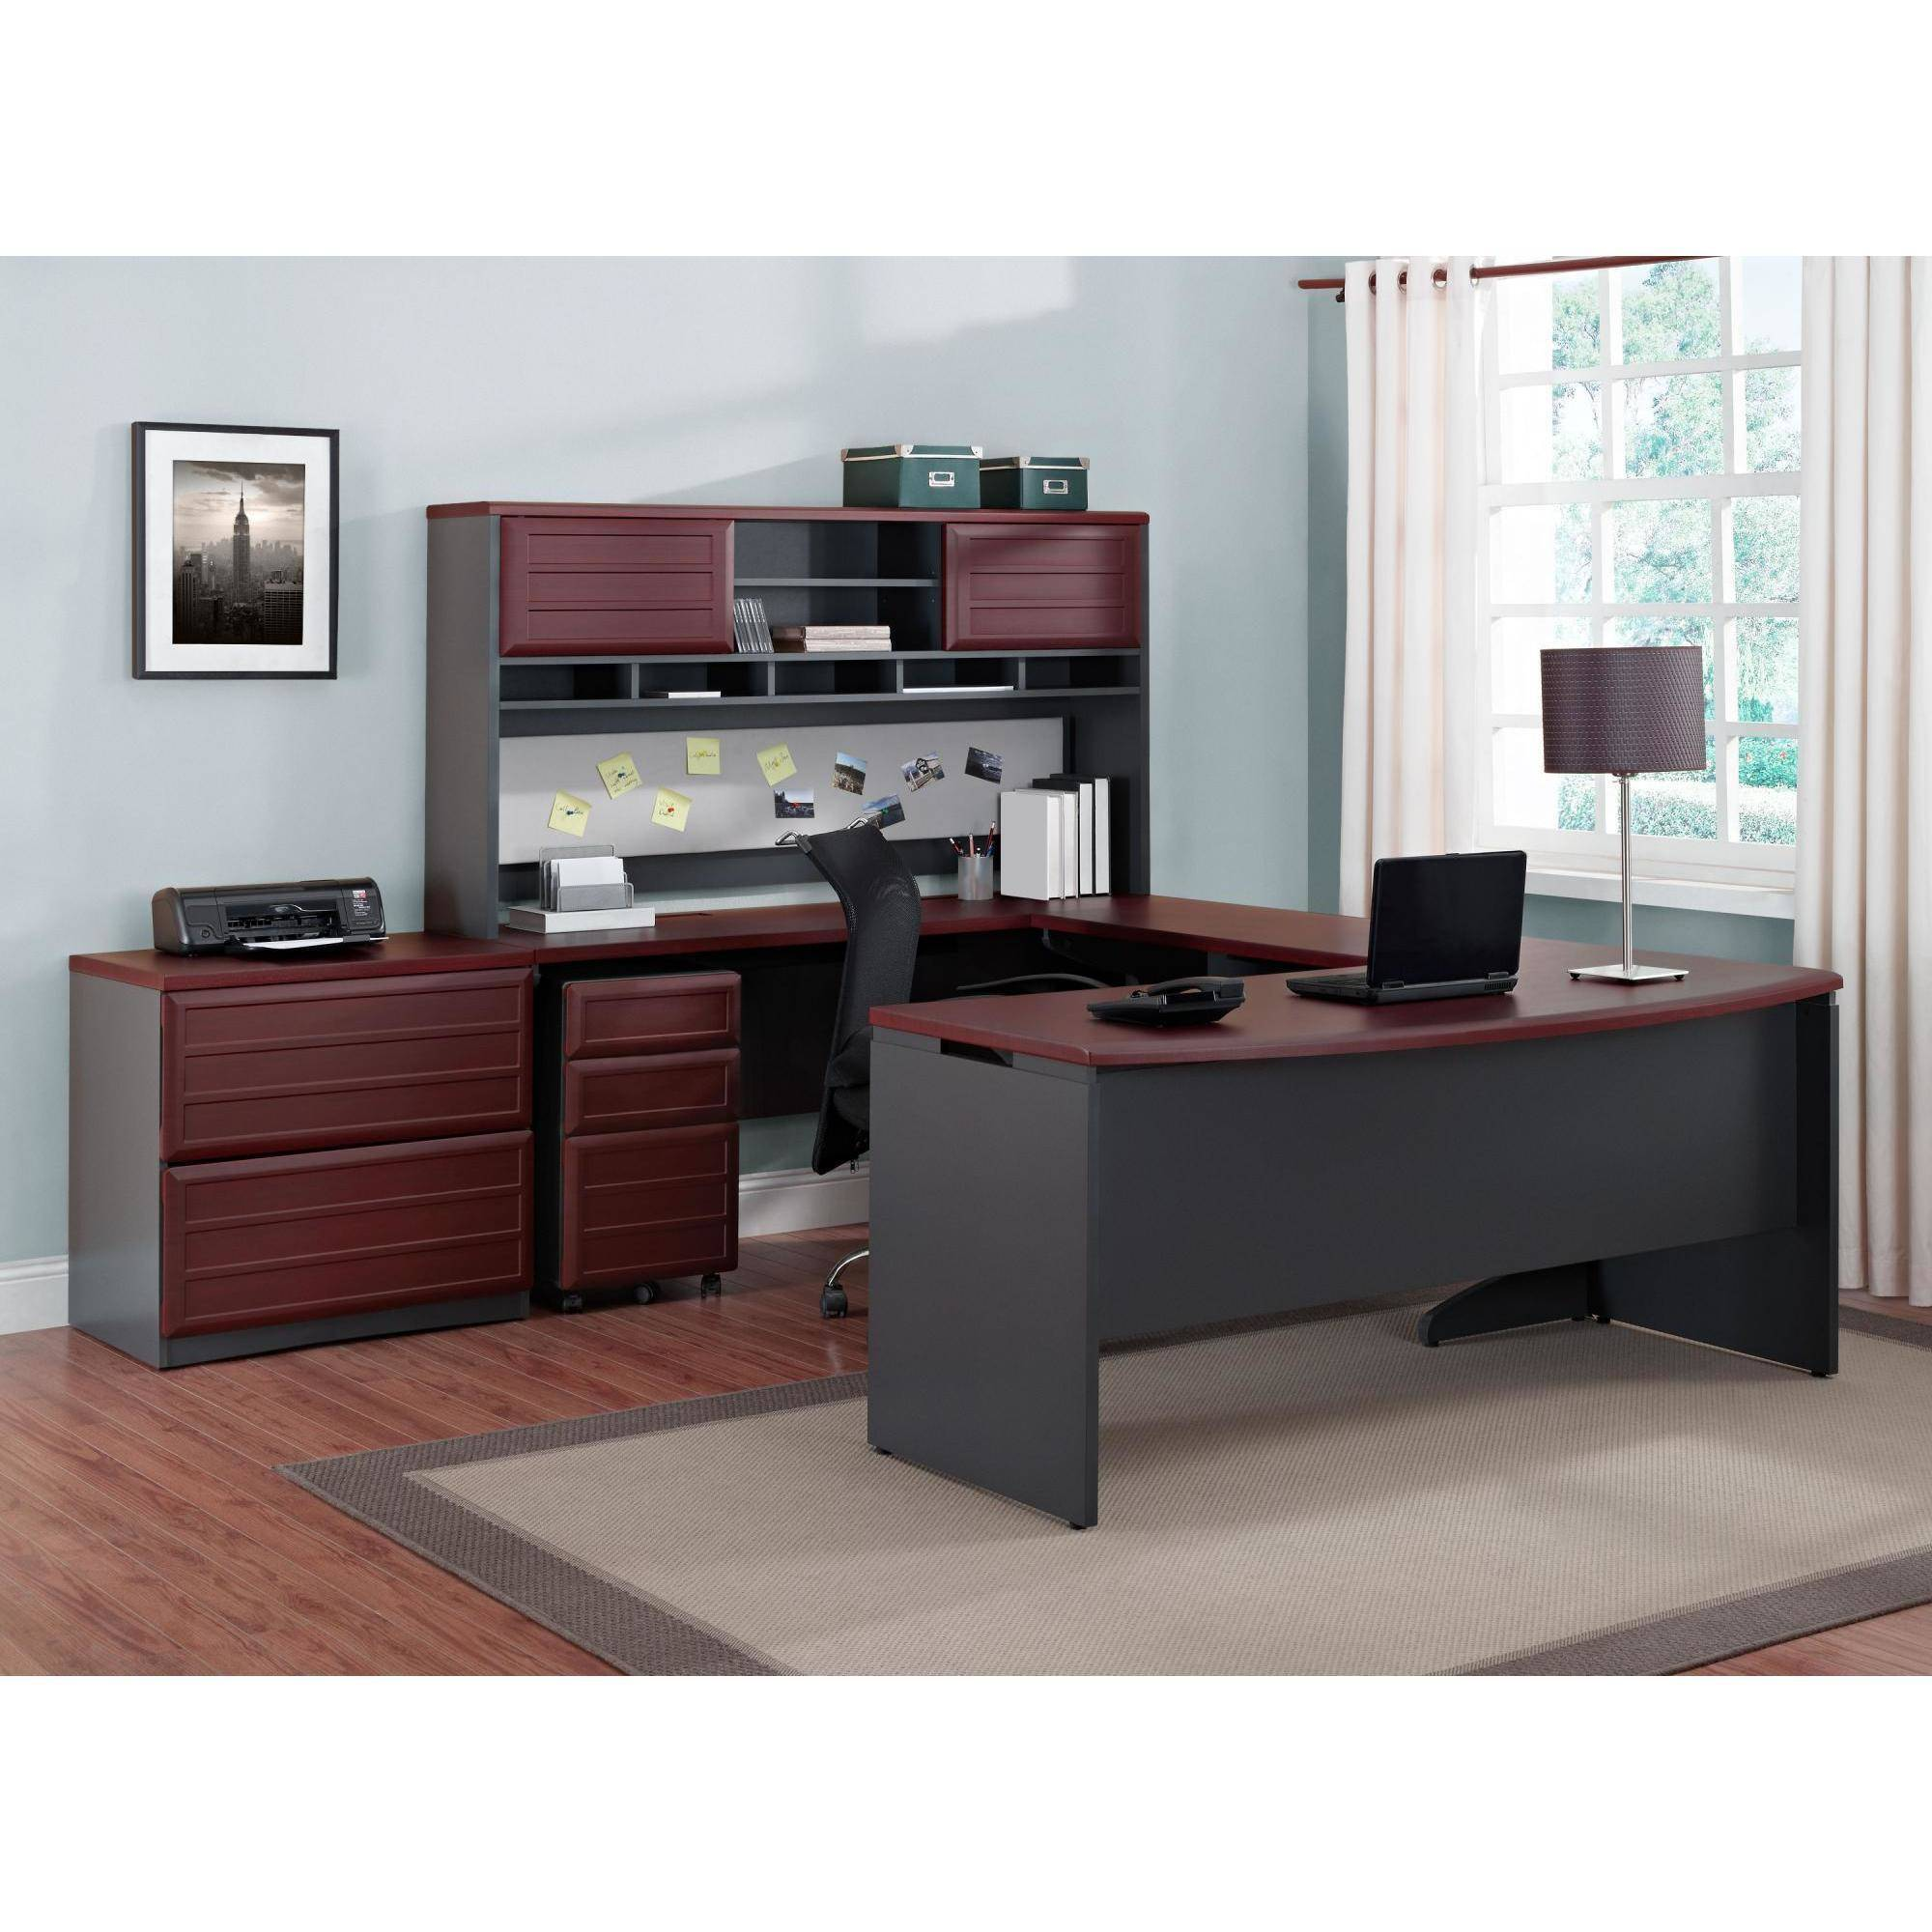 Ameriwood Home Pursuit Executive Desk, Cherry/Gray   Walmart.com